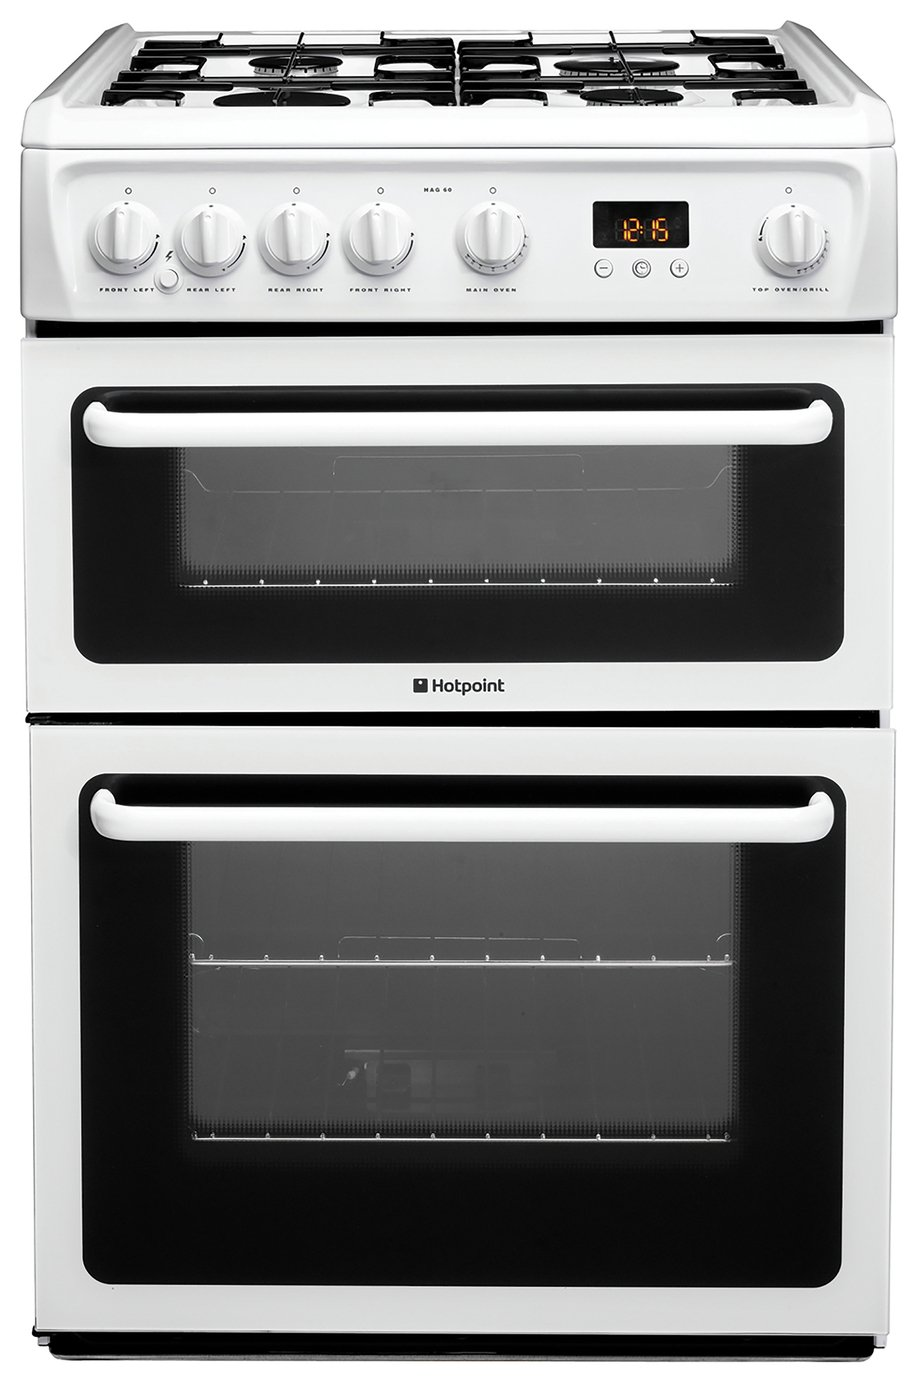 Hotpoint HAG60P 60cm Double Oven Gas Cooker review